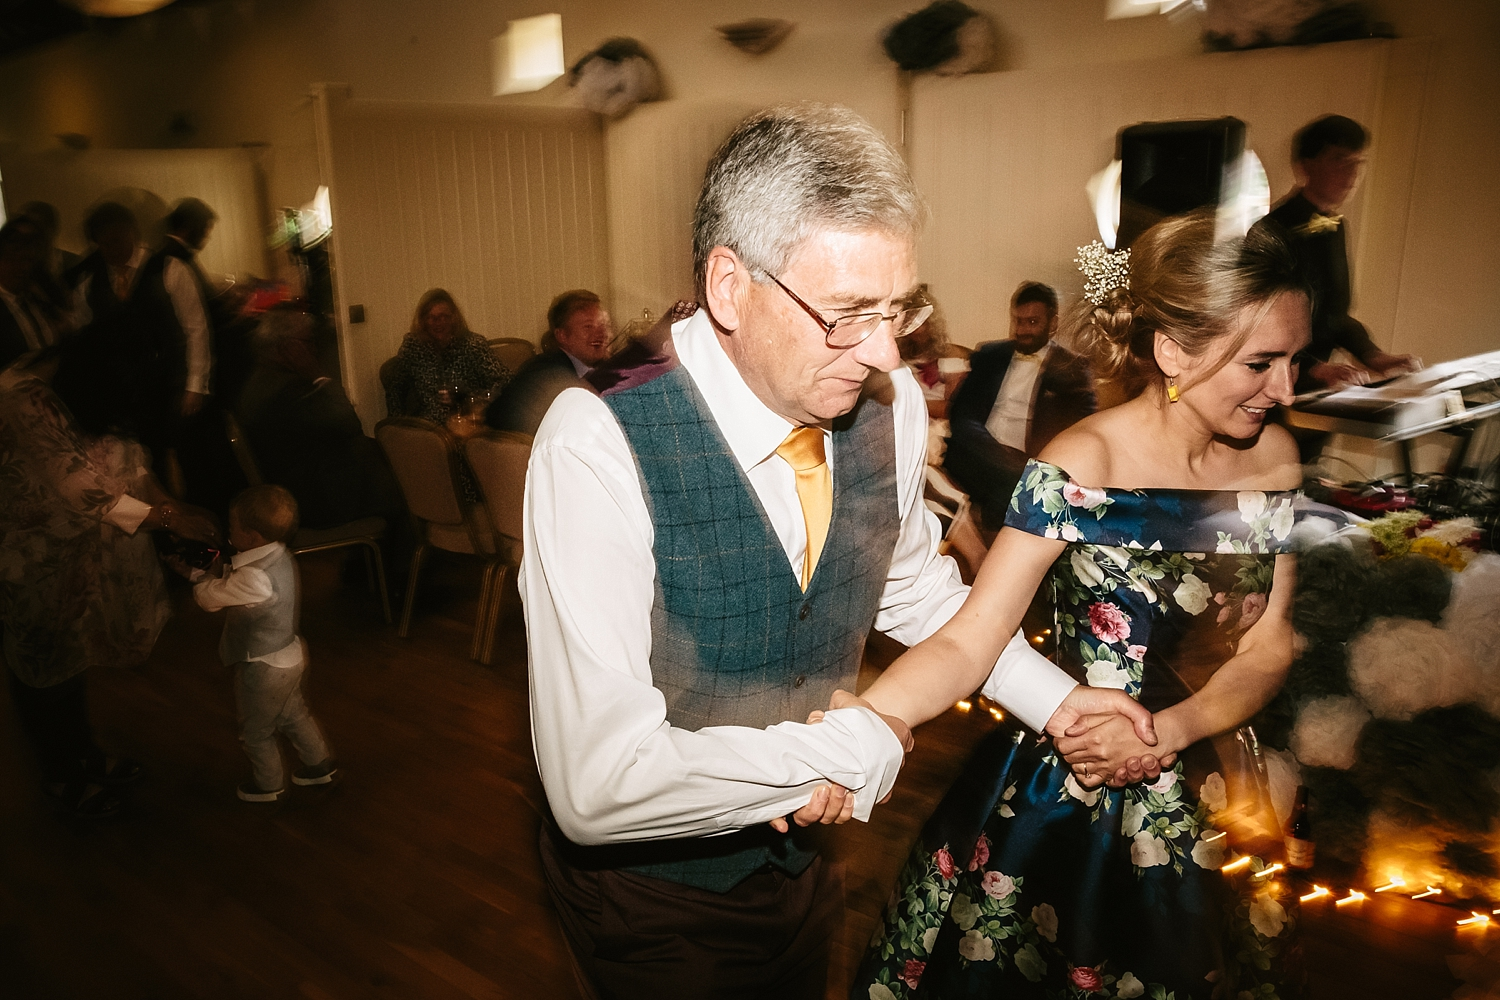 Natlie-Matthew-yorkshire-natural-relaxed-fun-documentary-reportage-candid-wedding-photography-photographer-Derby-Nottingham-Derbyshire-Nottinghamshire-Leicestershire-Lincolnshire-East-Midlands-92.jpg